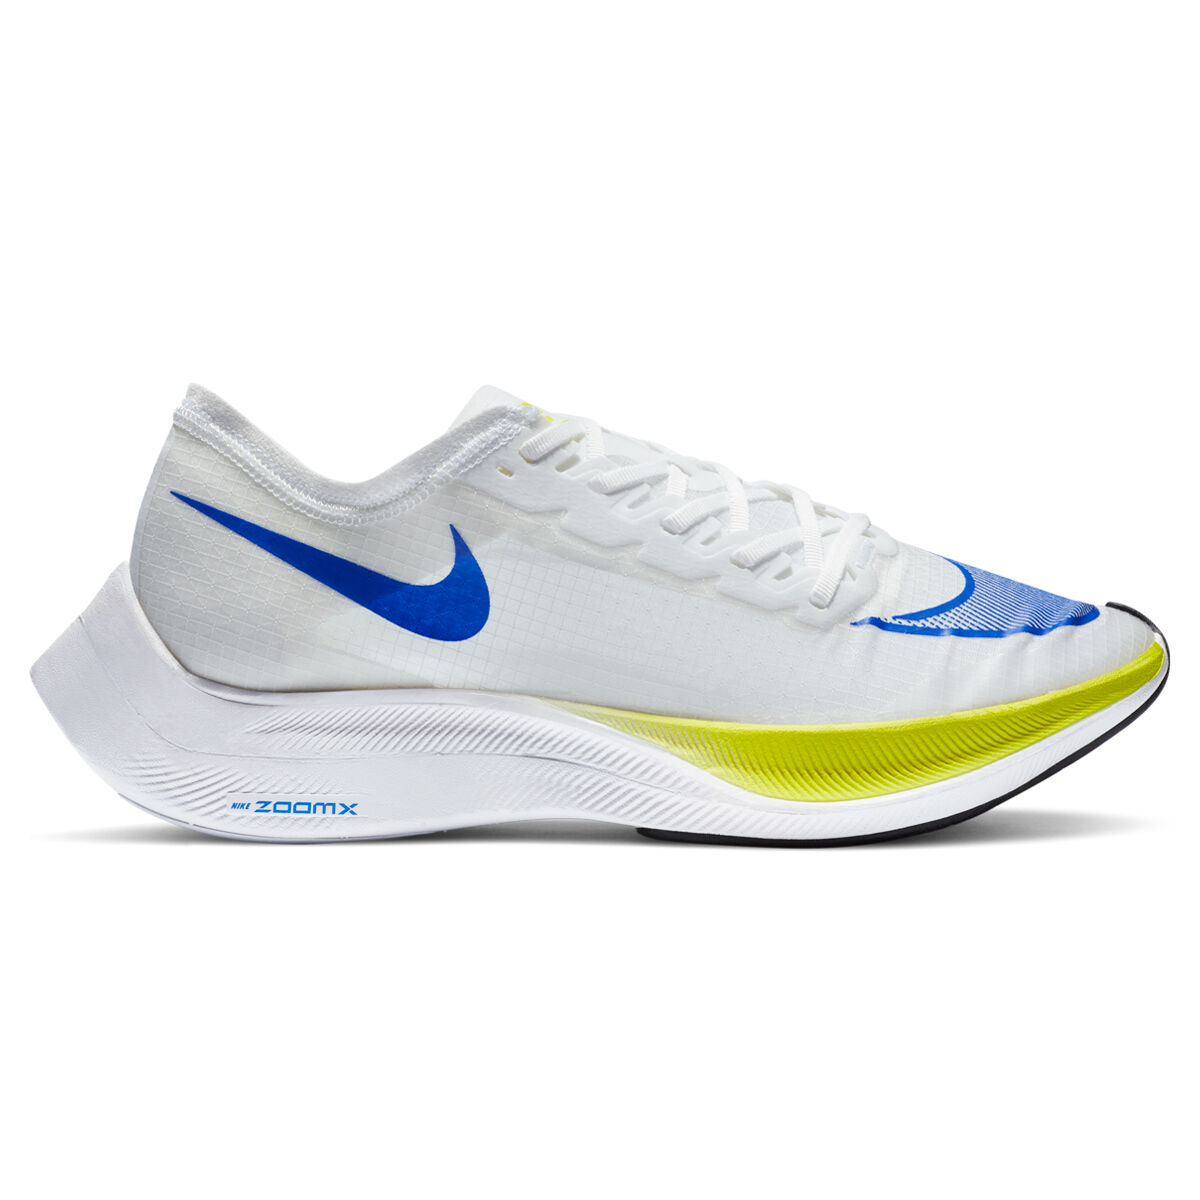 Nike Air ZoomX Vaporfly Next% Mens Running Shoes | 7south Sport